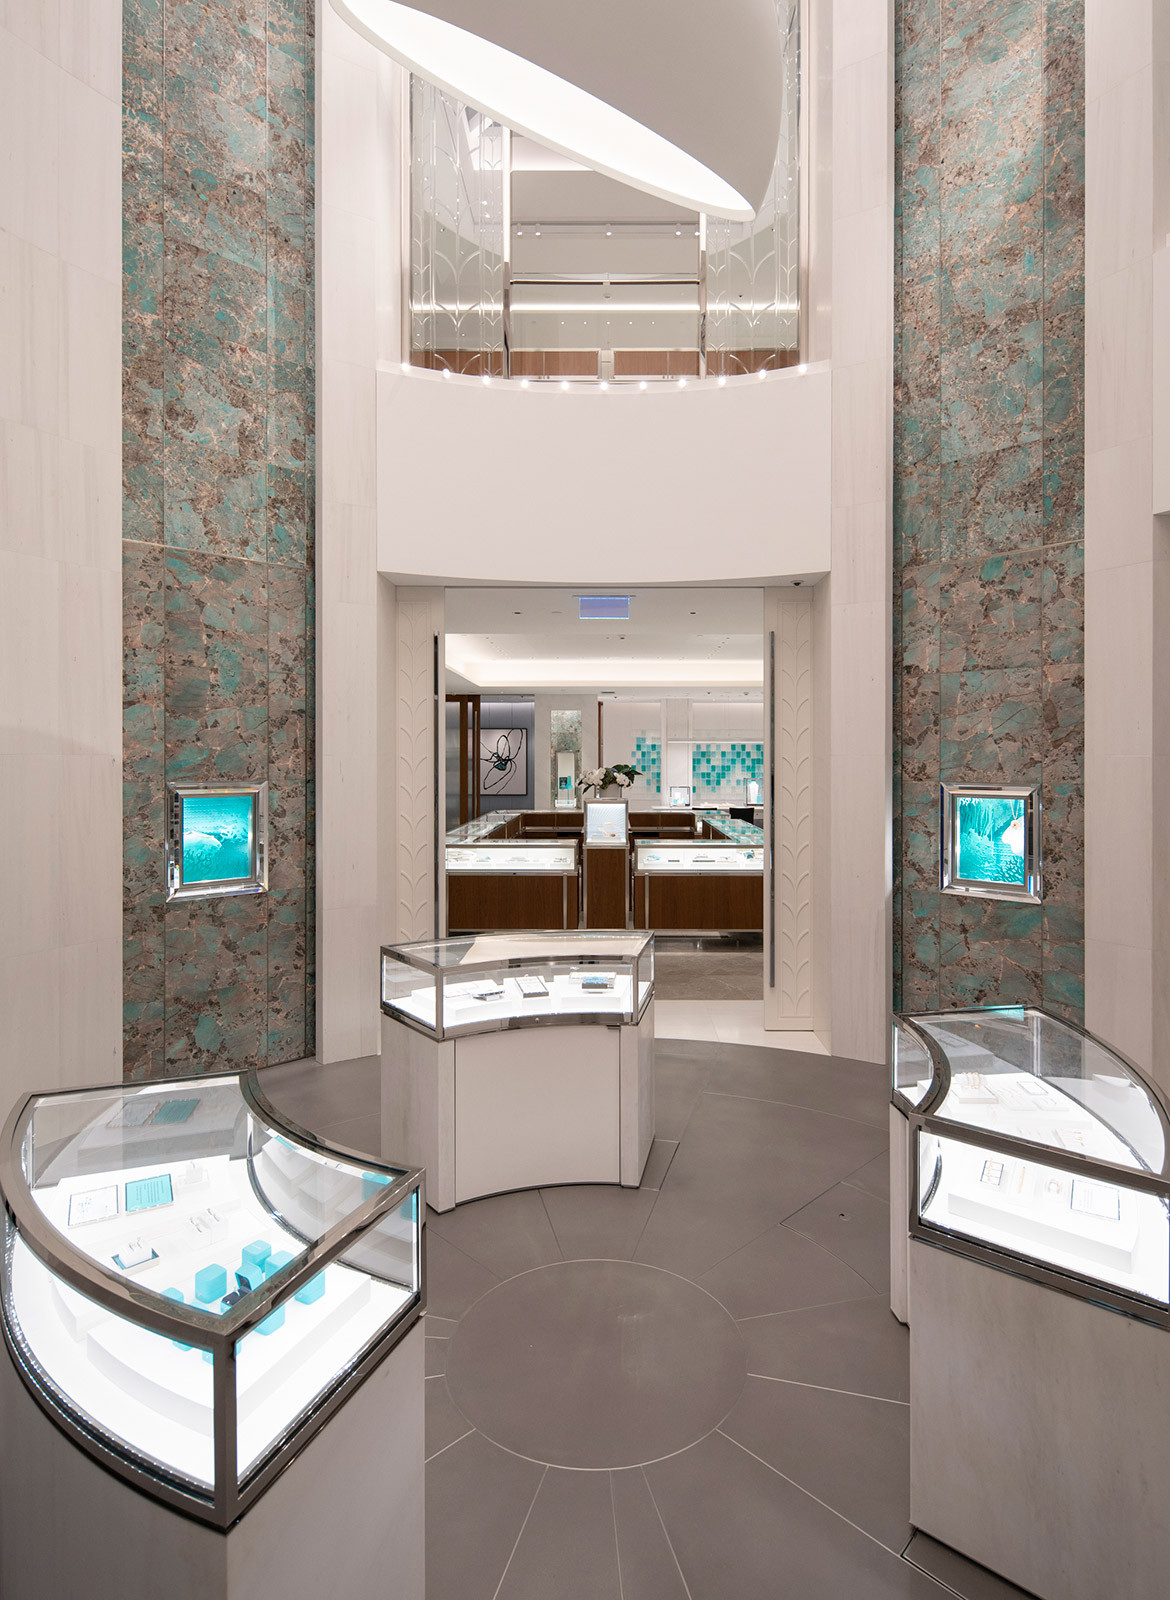 Tiffany & Co. Sydney Richard Moore foyer